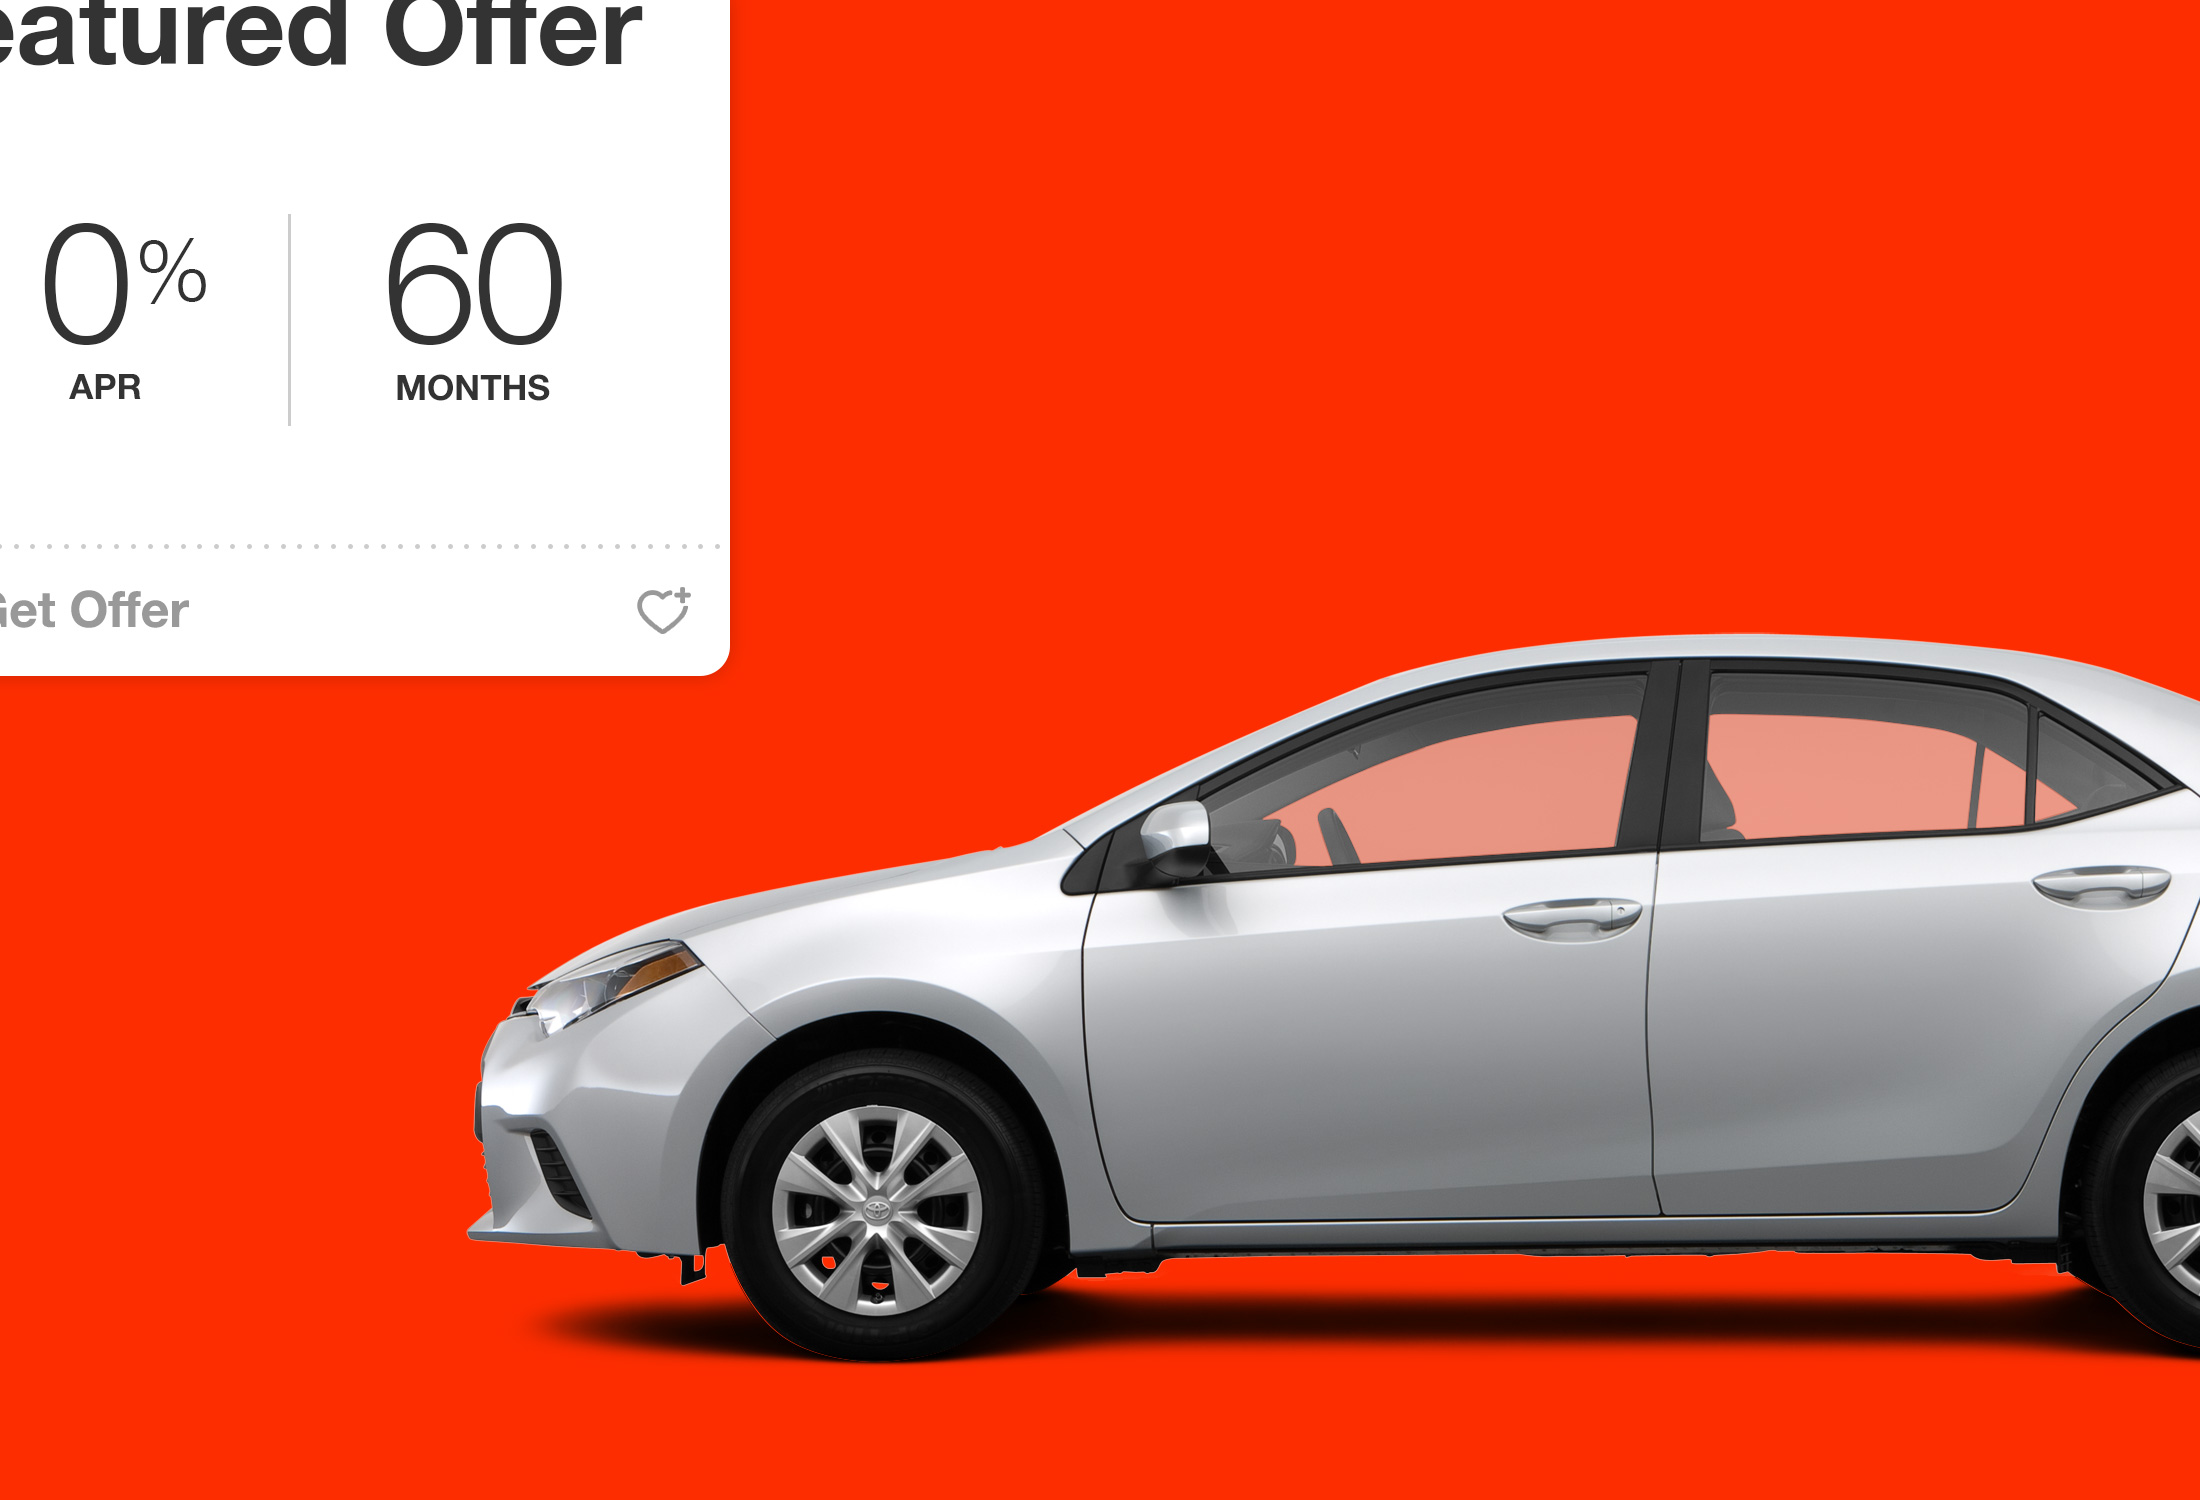 Zoomed in portion of BuyAToyota.com website